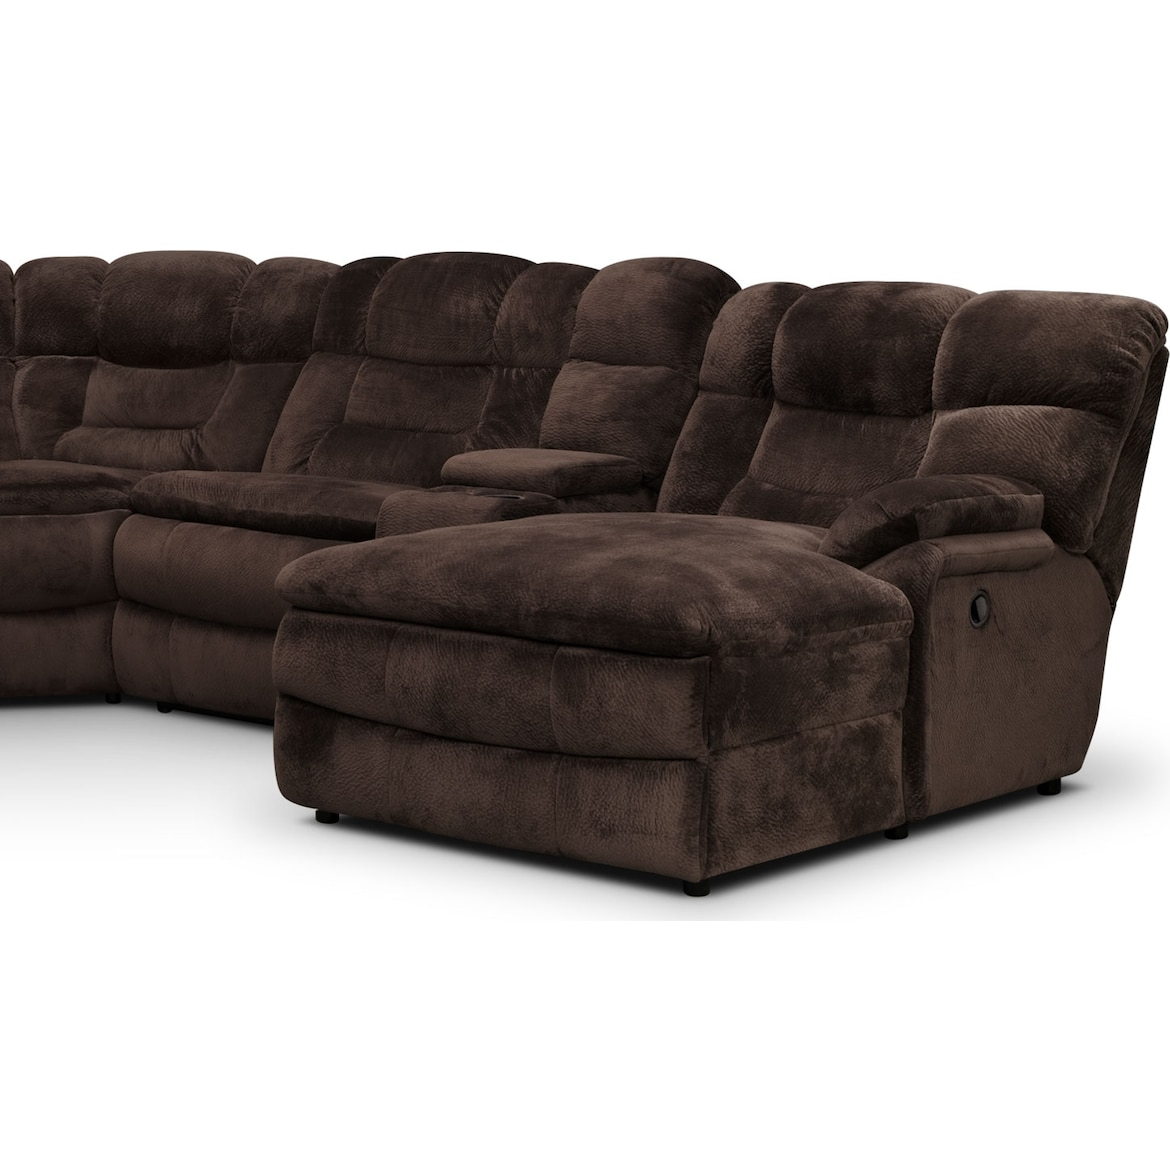 Phenomenal Big Softie 6 Piece Power Reclining Sectional With Chaise And 2 Reclining Seats Dailytribune Chair Design For Home Dailytribuneorg